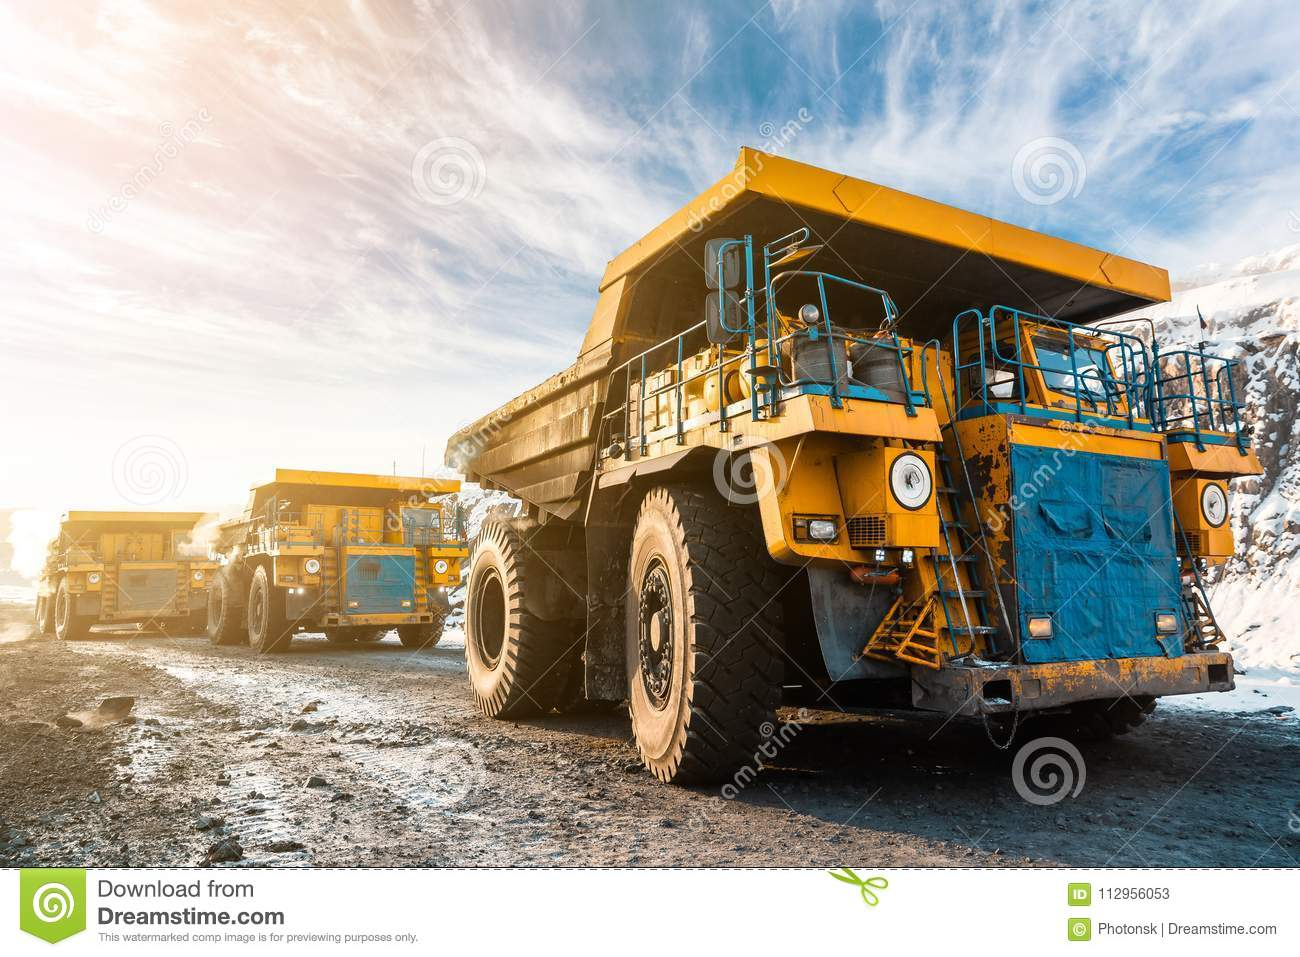 Large quarry dump truck. Loading the rock in dumper. Loading coal into body truck. Production useful minerals. Mining